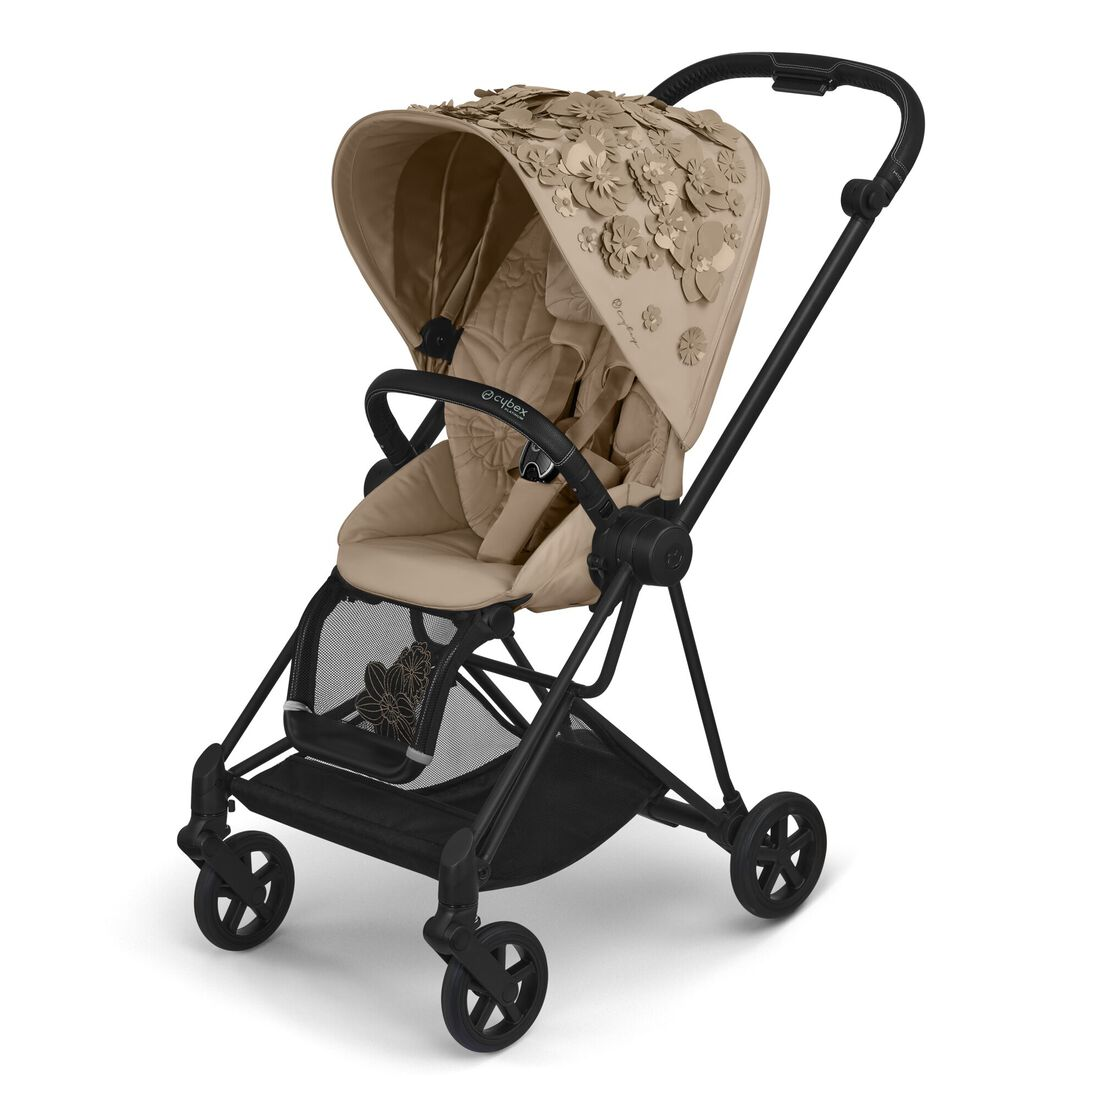 CYBEX Mios Seat Pack - Nude Beige in Nude Beige large image number 2